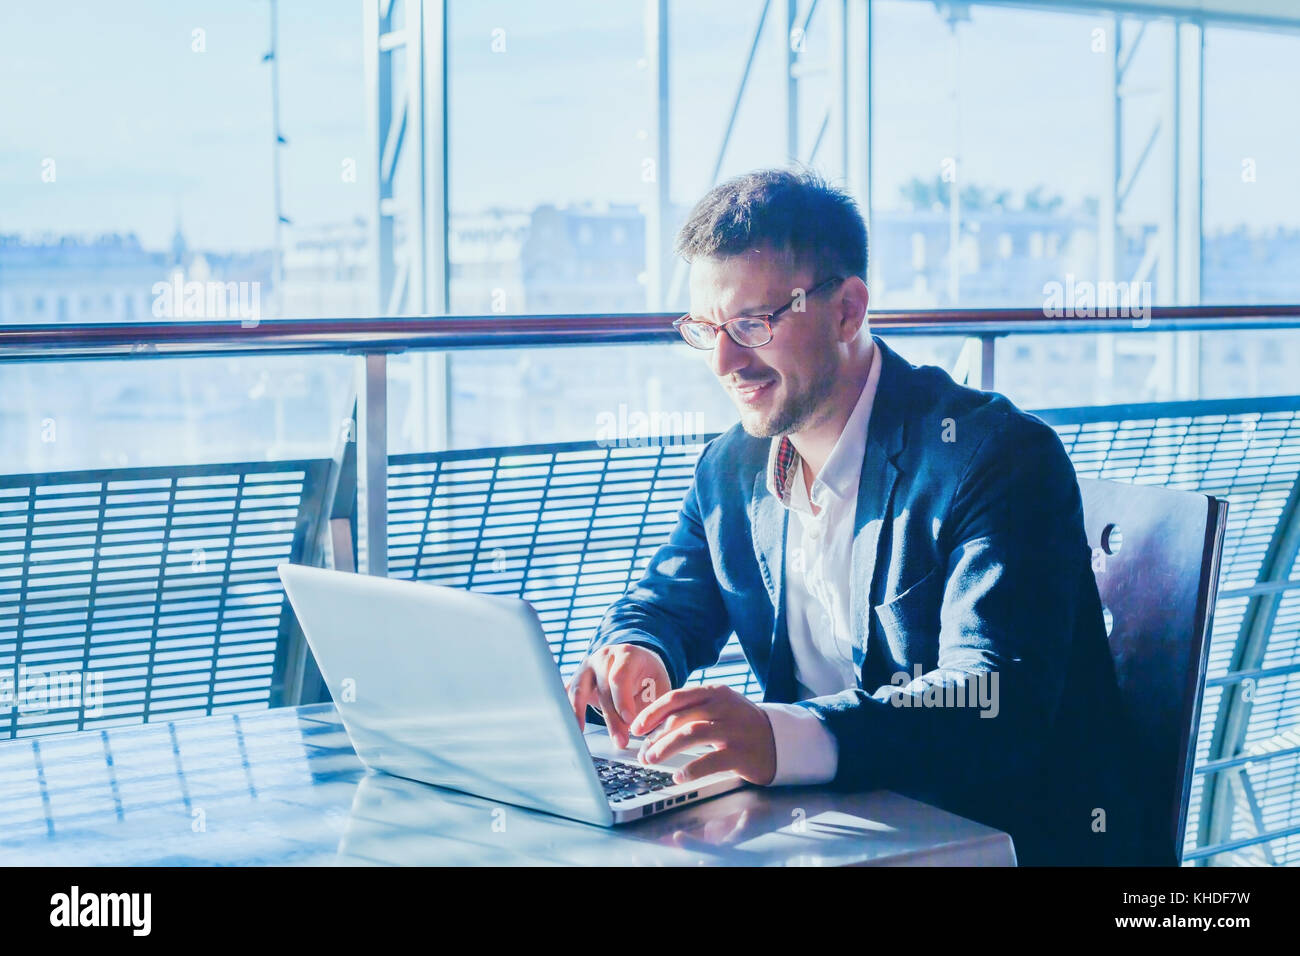 business man entrepreneur working on computer, businessman reading emails and smiling - Stock Image